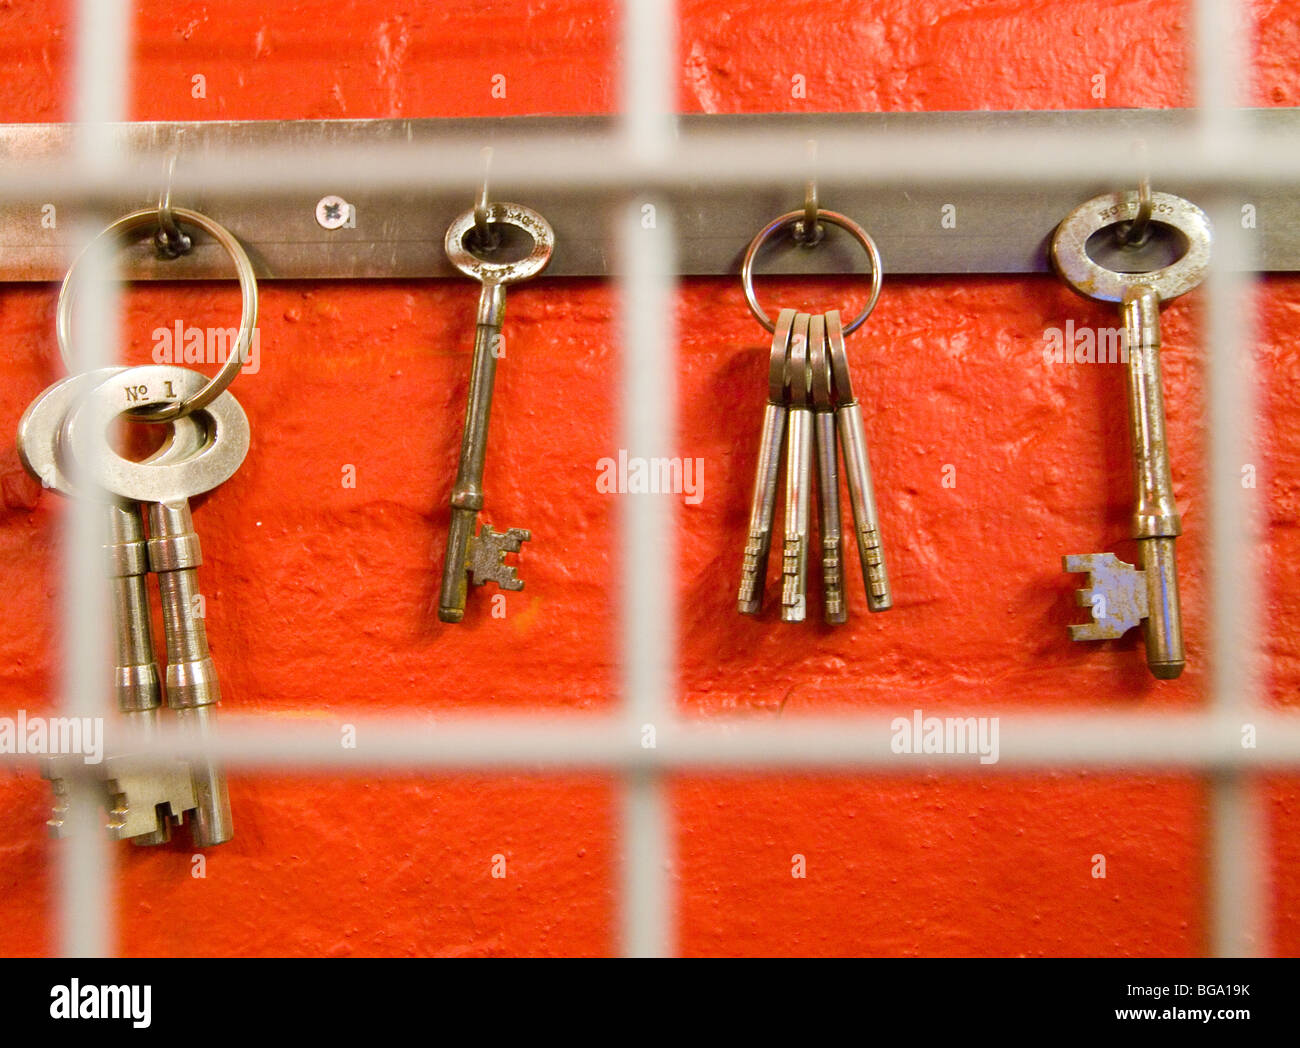 A row of metal keys, hanging up and locked away behind a mesh door. - Stock Image